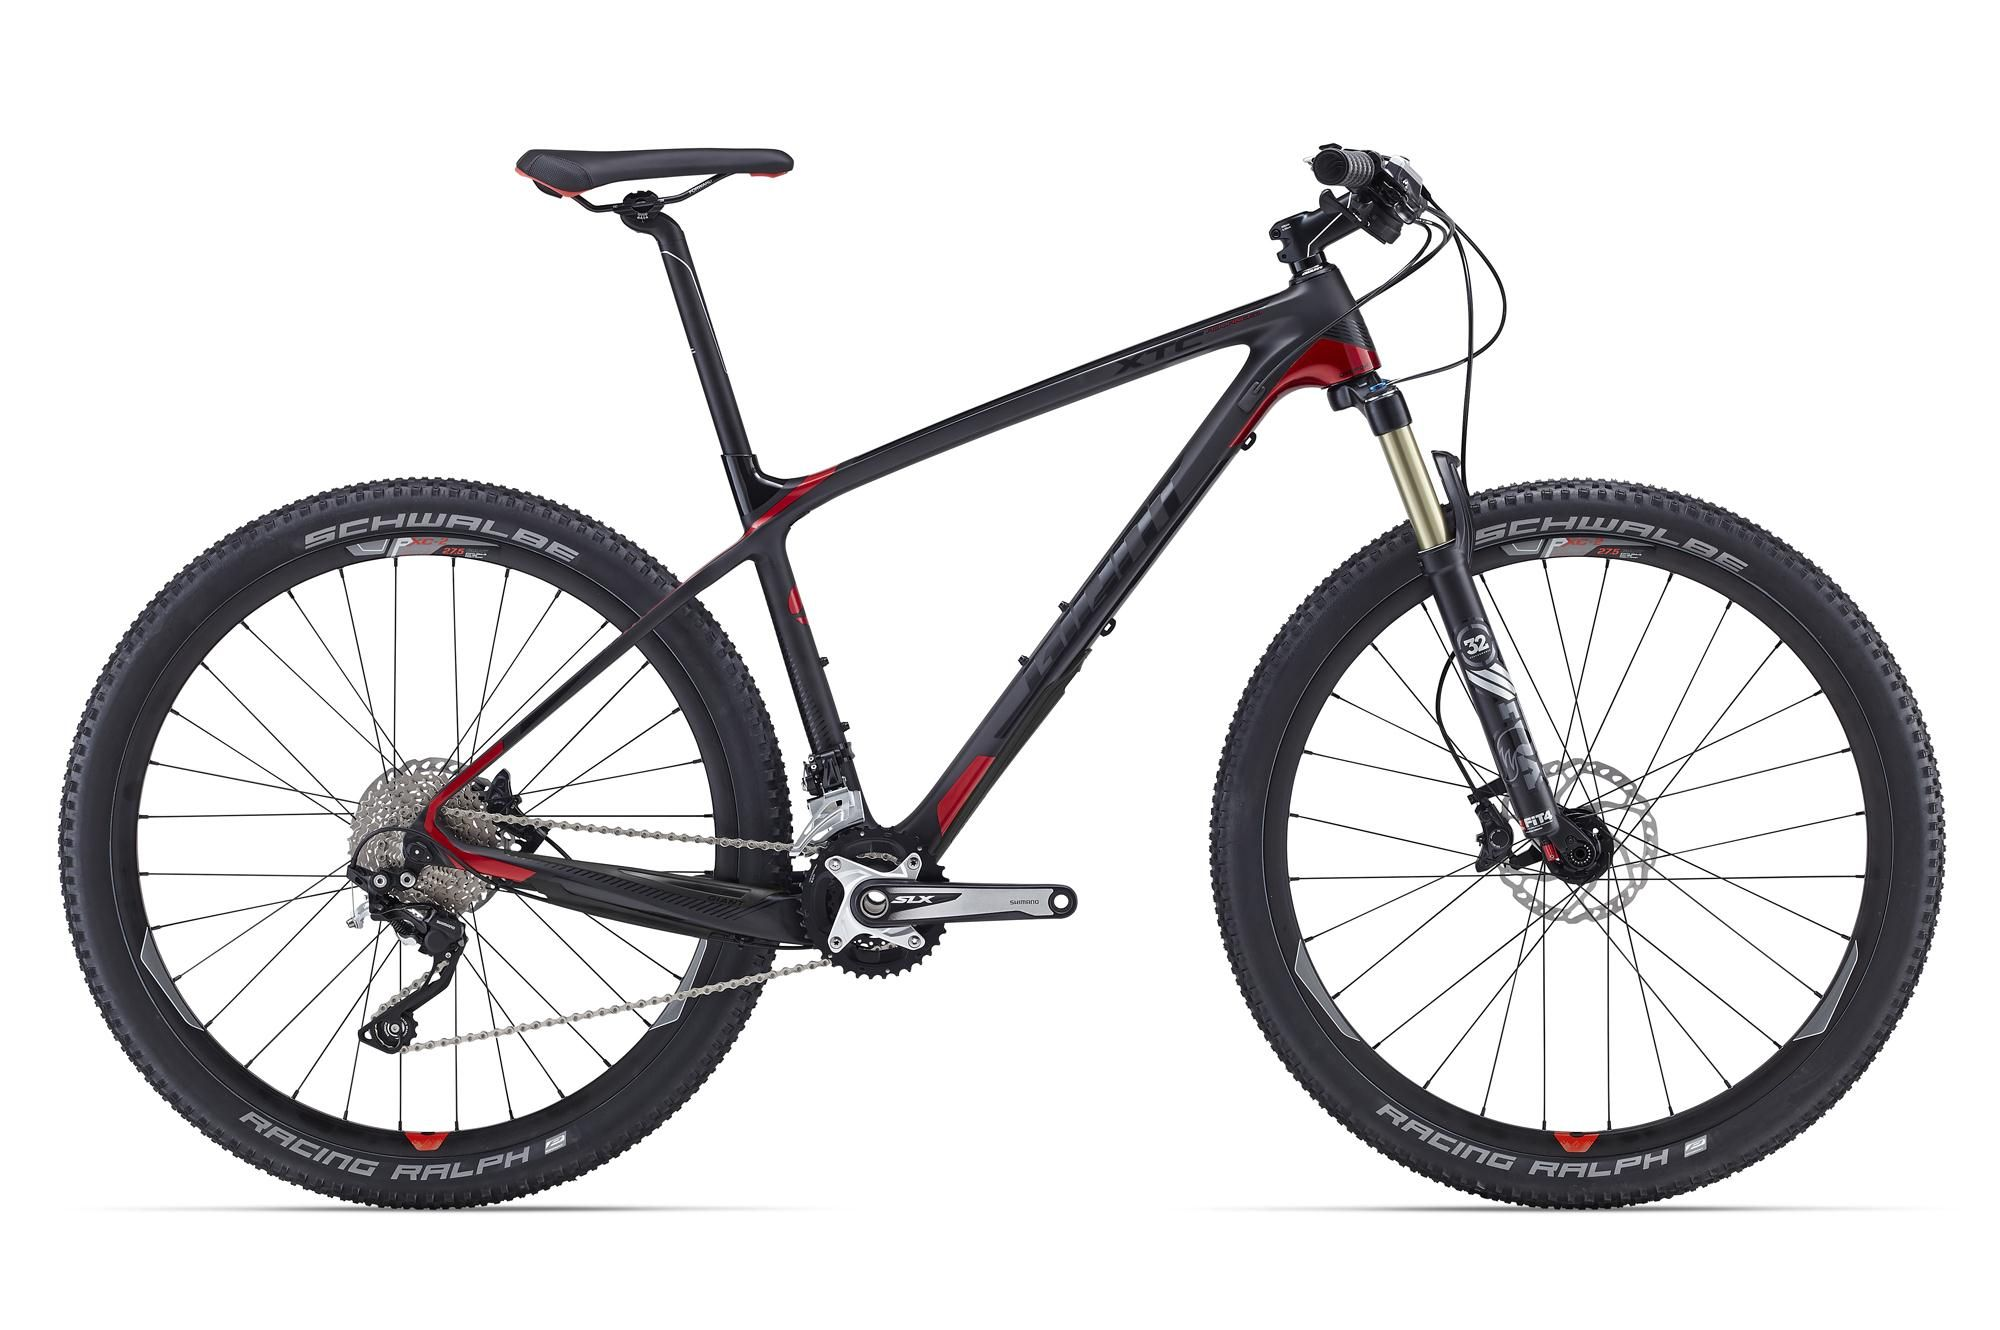 Велосипед Giant XtC Advanced 27.5 2 2016 велосипед giant xtc advanced 27 5 2 2014